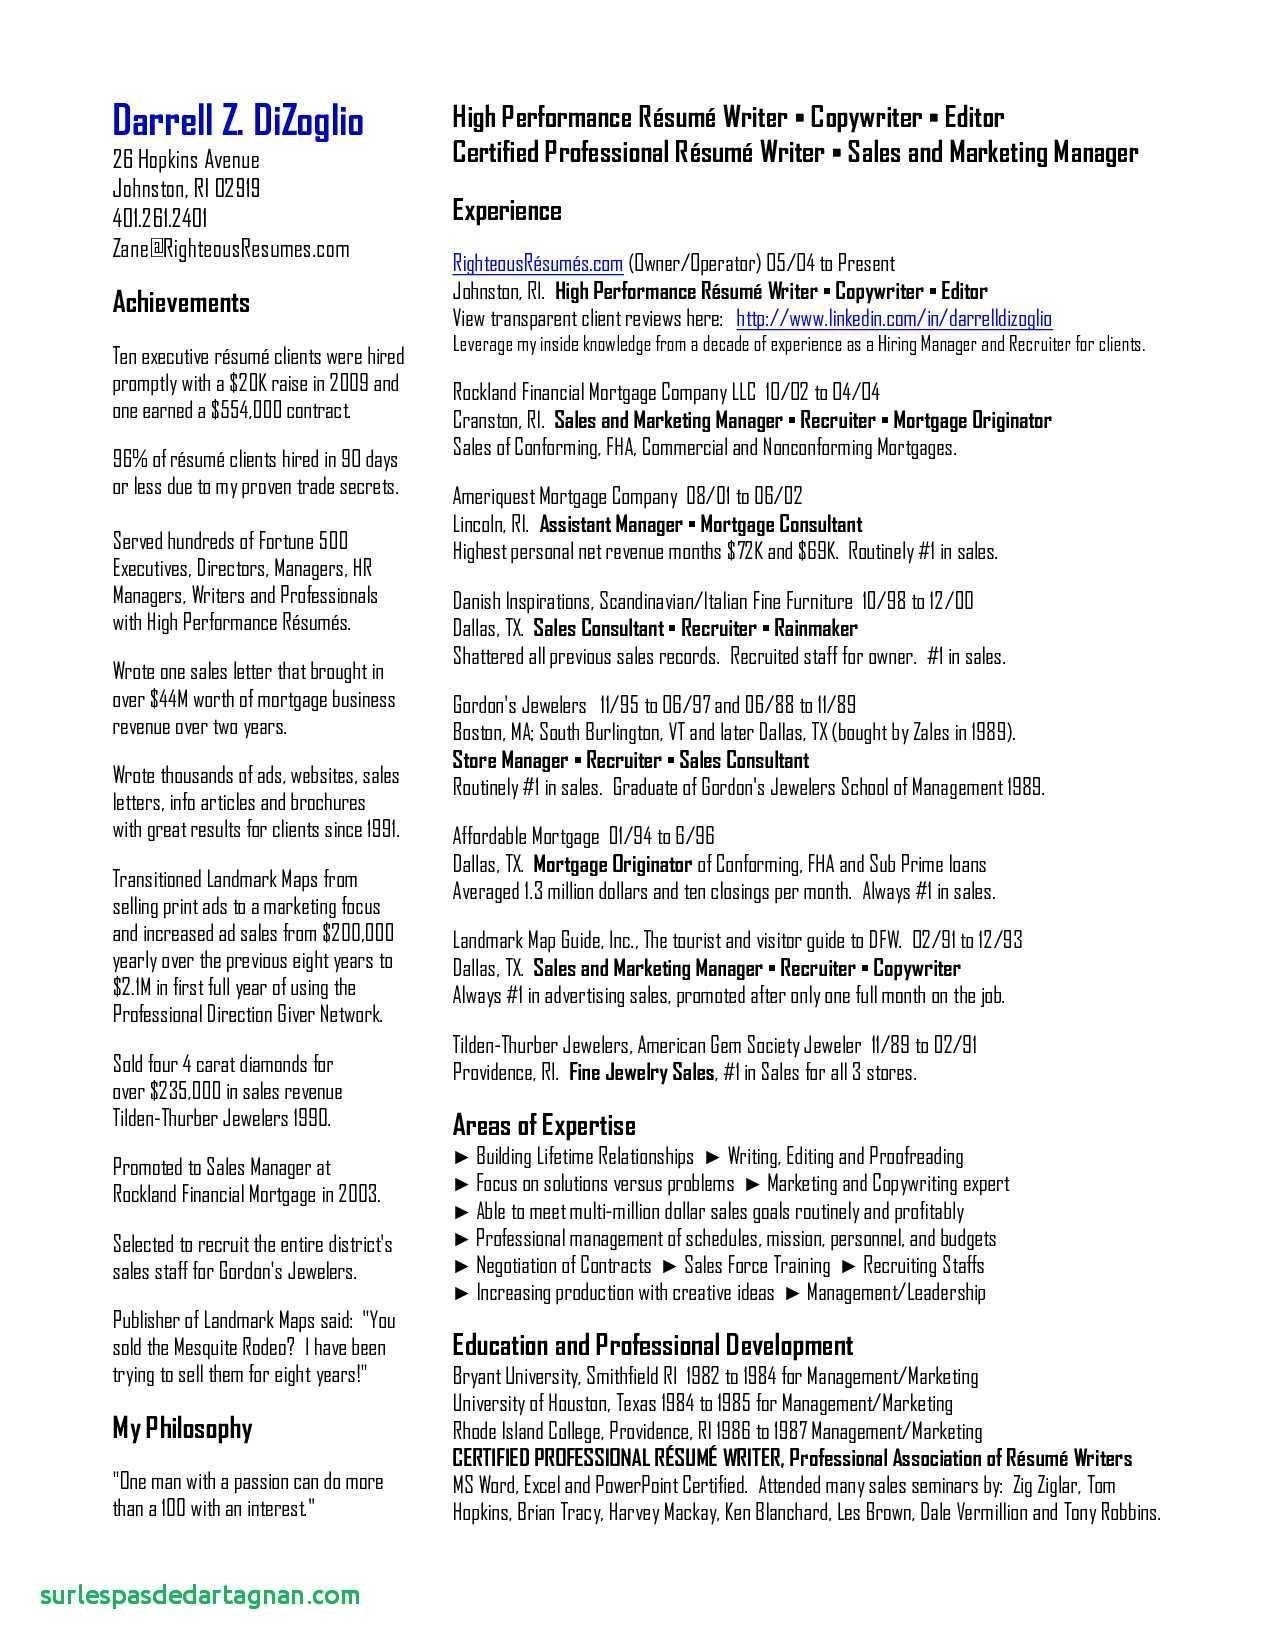 Writer Resume Template - Free Fill In the Blank Printable Resume Resume Resume Examples